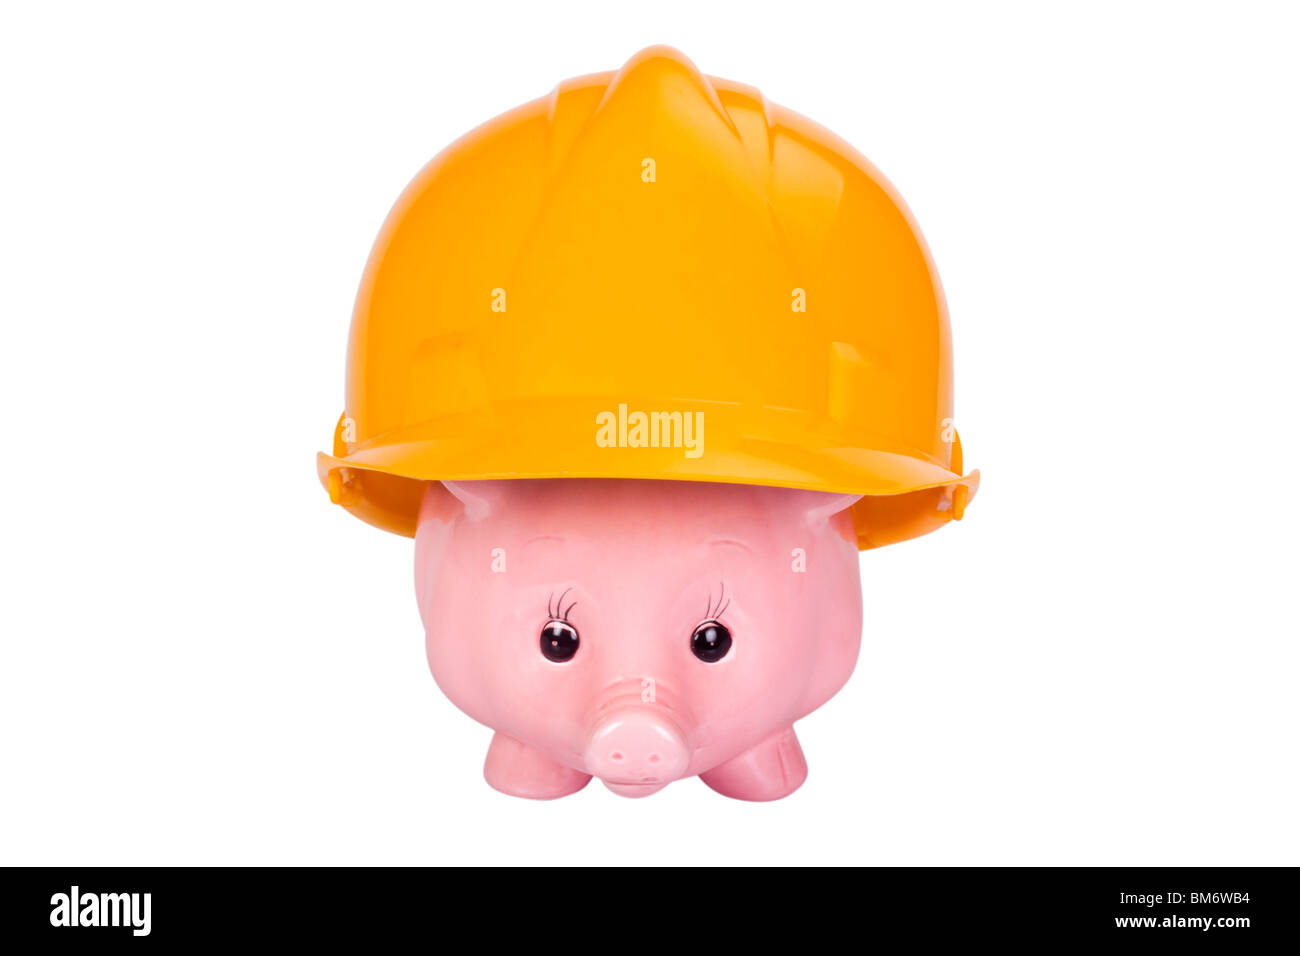 Close-up of a piggy bank with a hardhat - Stock Image